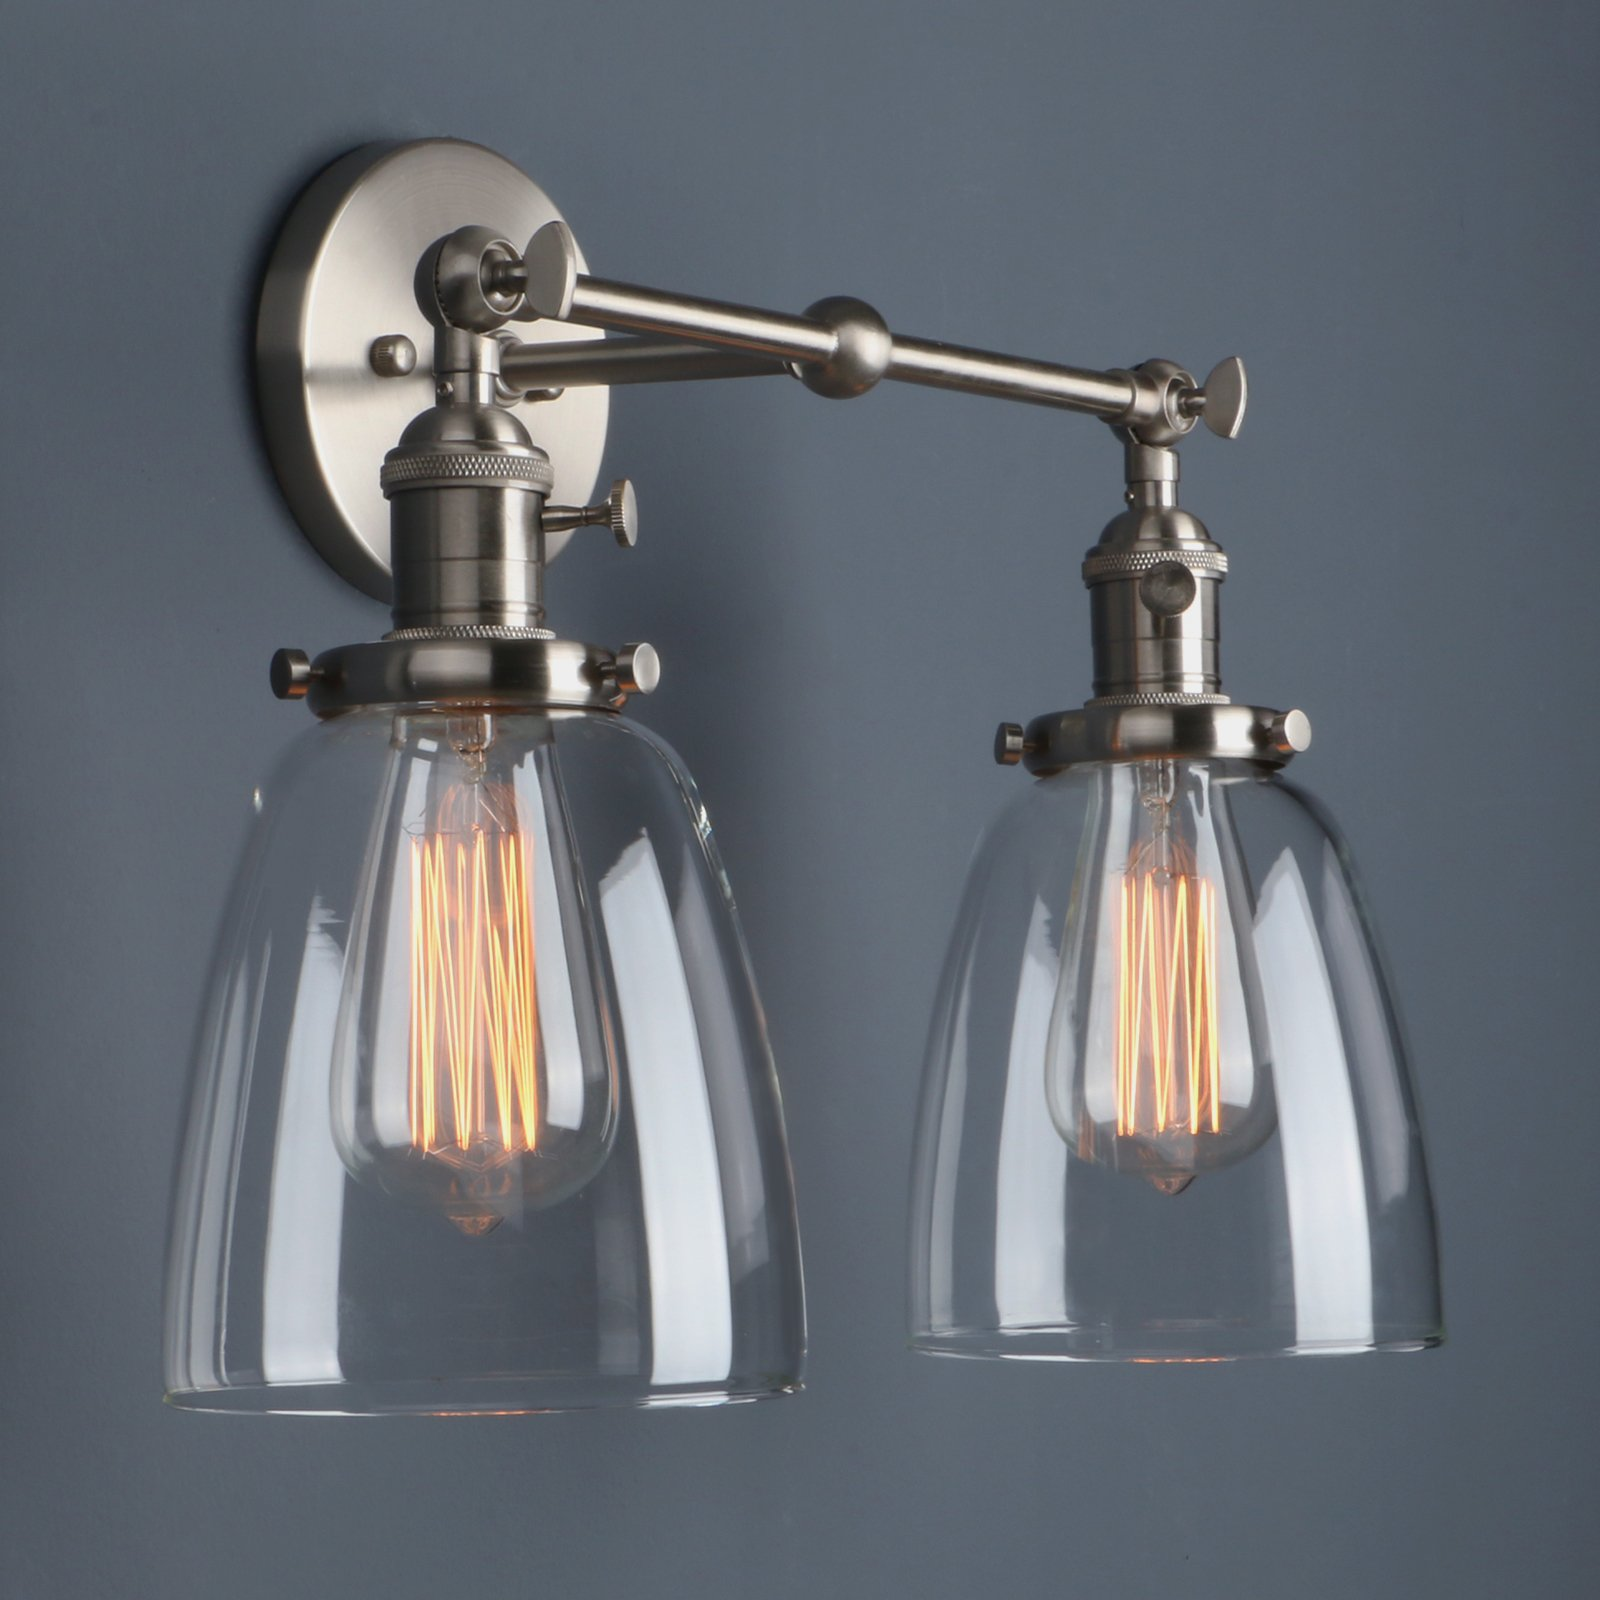 lampara glass edison bathroom reading item vintage from lighting in industrial wall light loft lamps fixtures home sconce retro lights de lamp pared bedroom